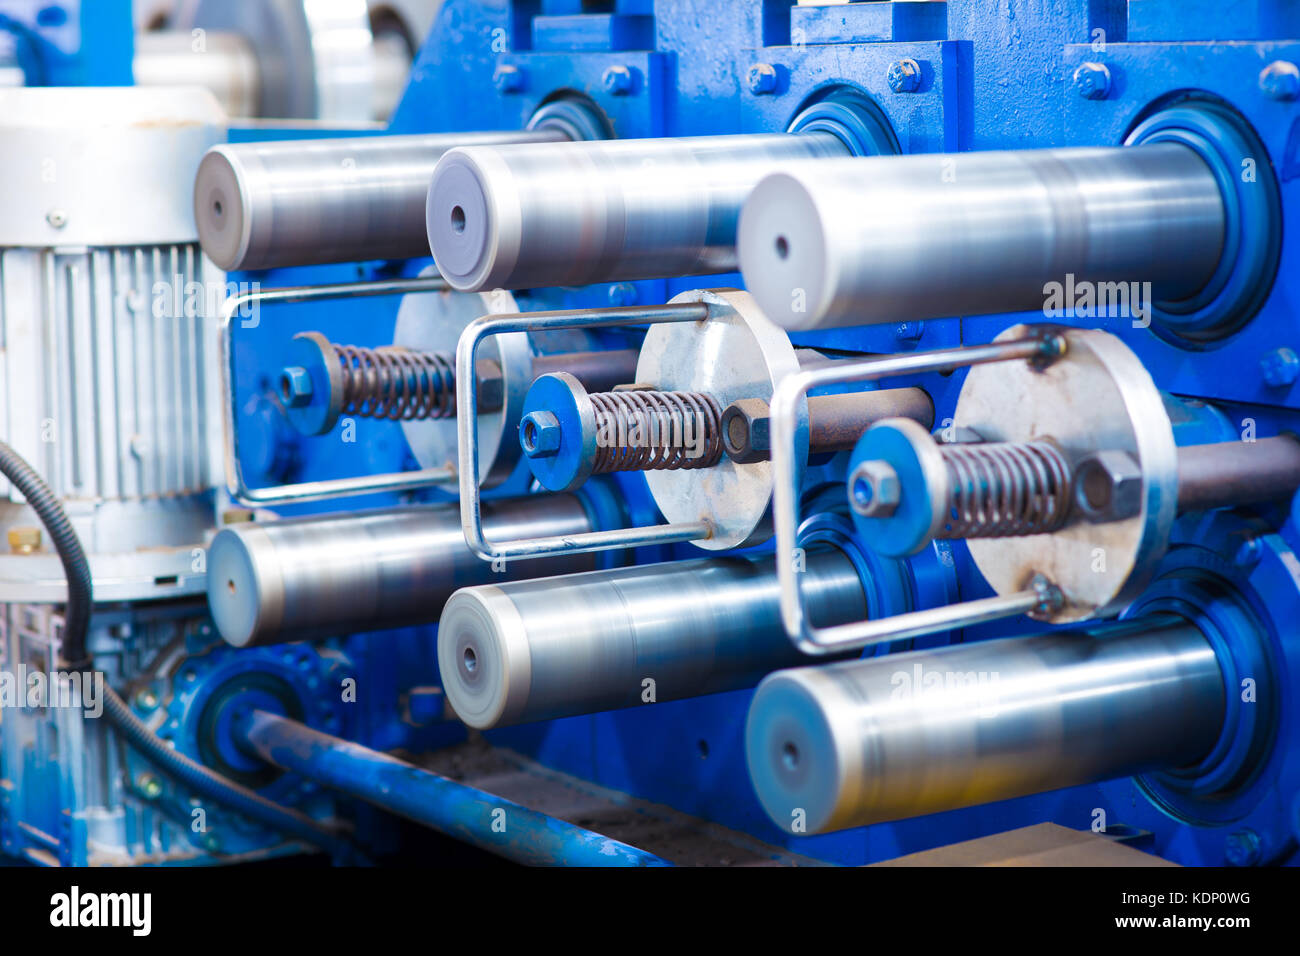 machine for slitting/cutting/stripping steel sheet - Stock Image